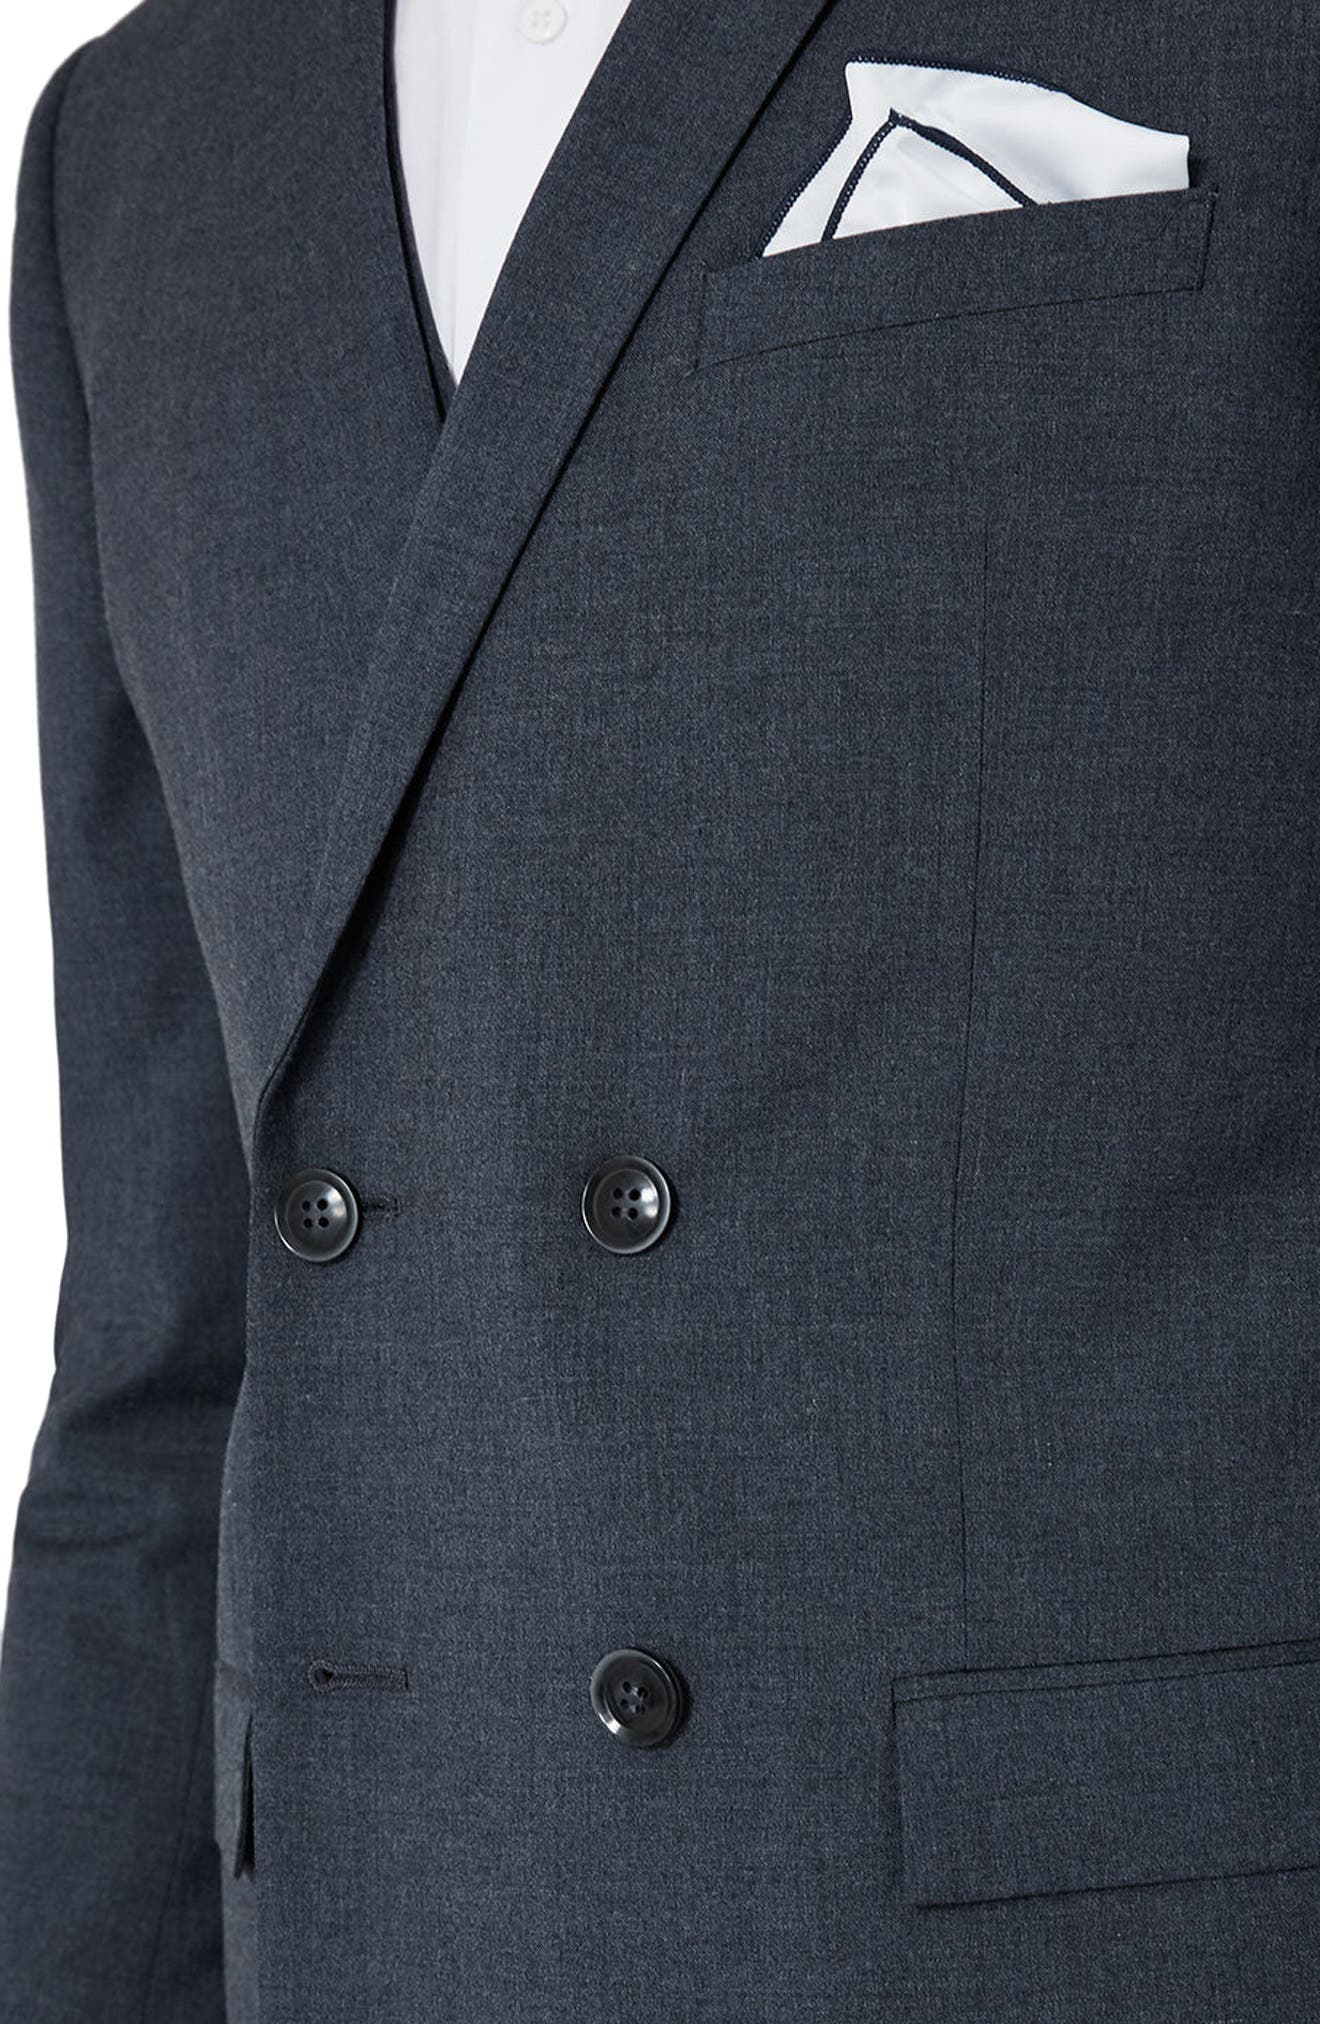 Skinny Fit Double Breasted Suit Jacket,                             Alternate thumbnail 3, color,                             410